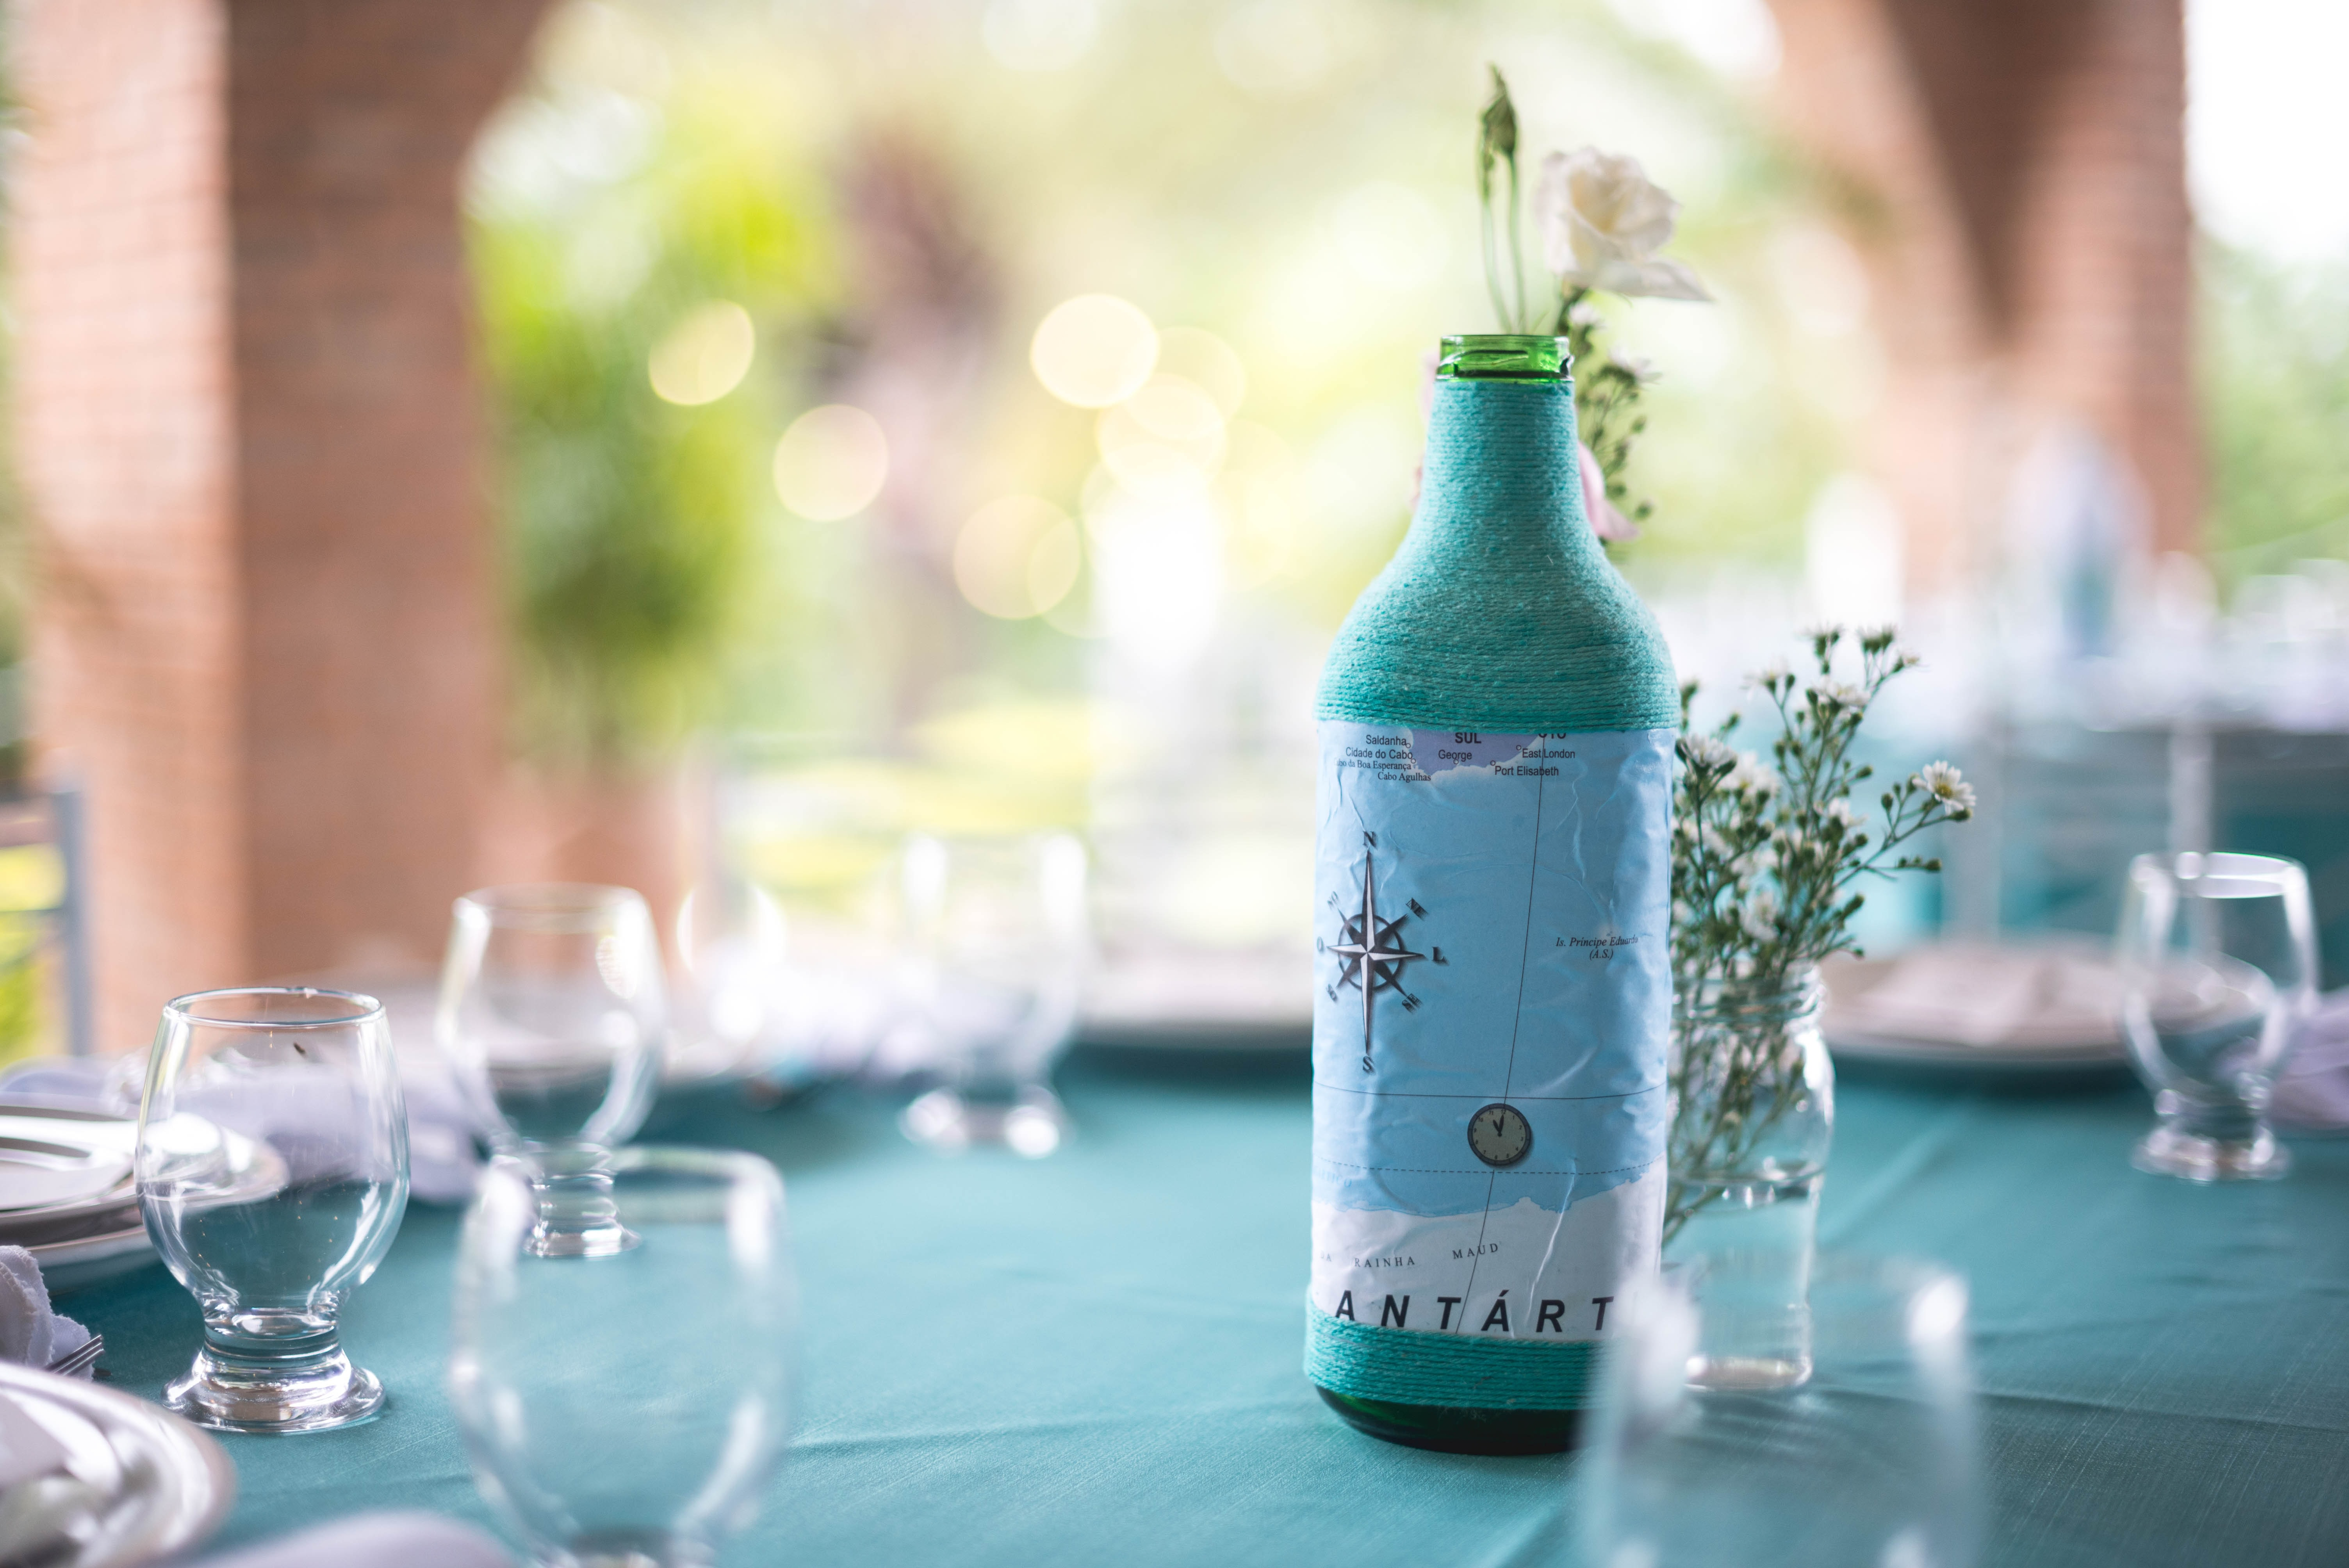 teal bottle in the middle of wine glasses